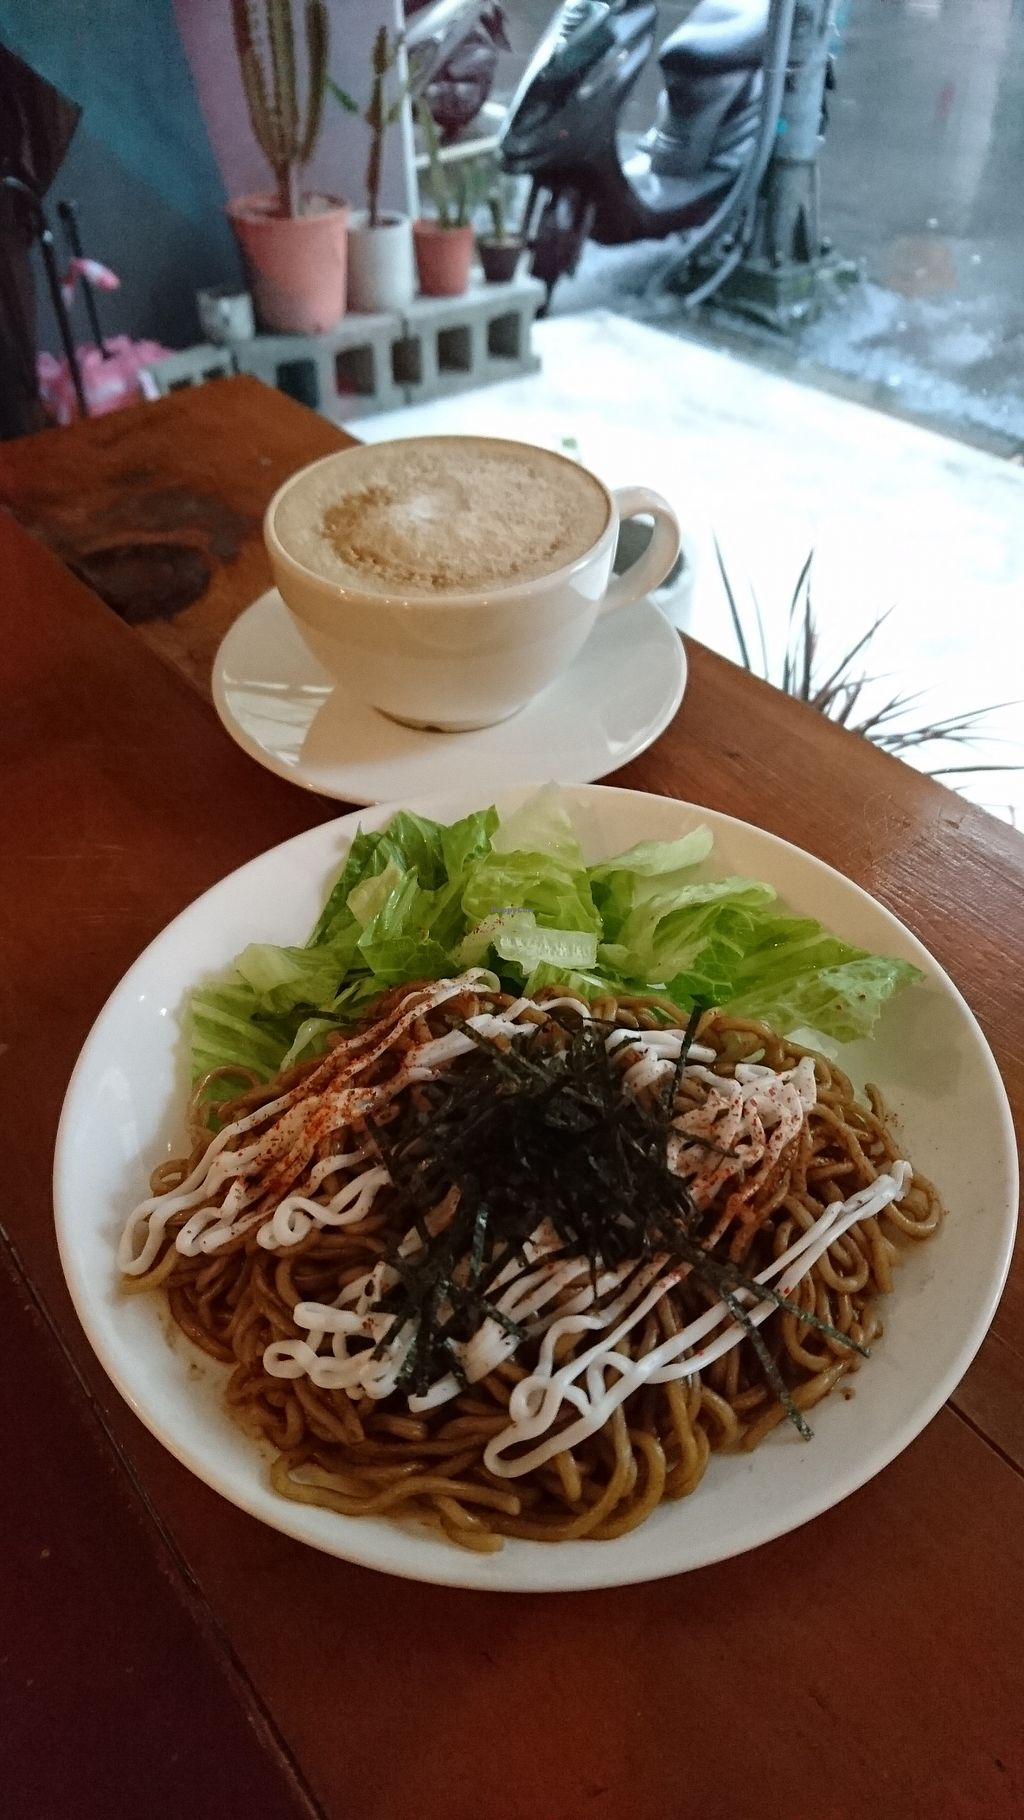 """Photo of Zhen De Coffee  by <a href=""""/members/profile/V-for-Vegan"""">V-for-Vegan</a> <br/>Japanese Fried Noodle <br/> March 18, 2018  - <a href='/contact/abuse/image/95386/372678'>Report</a>"""